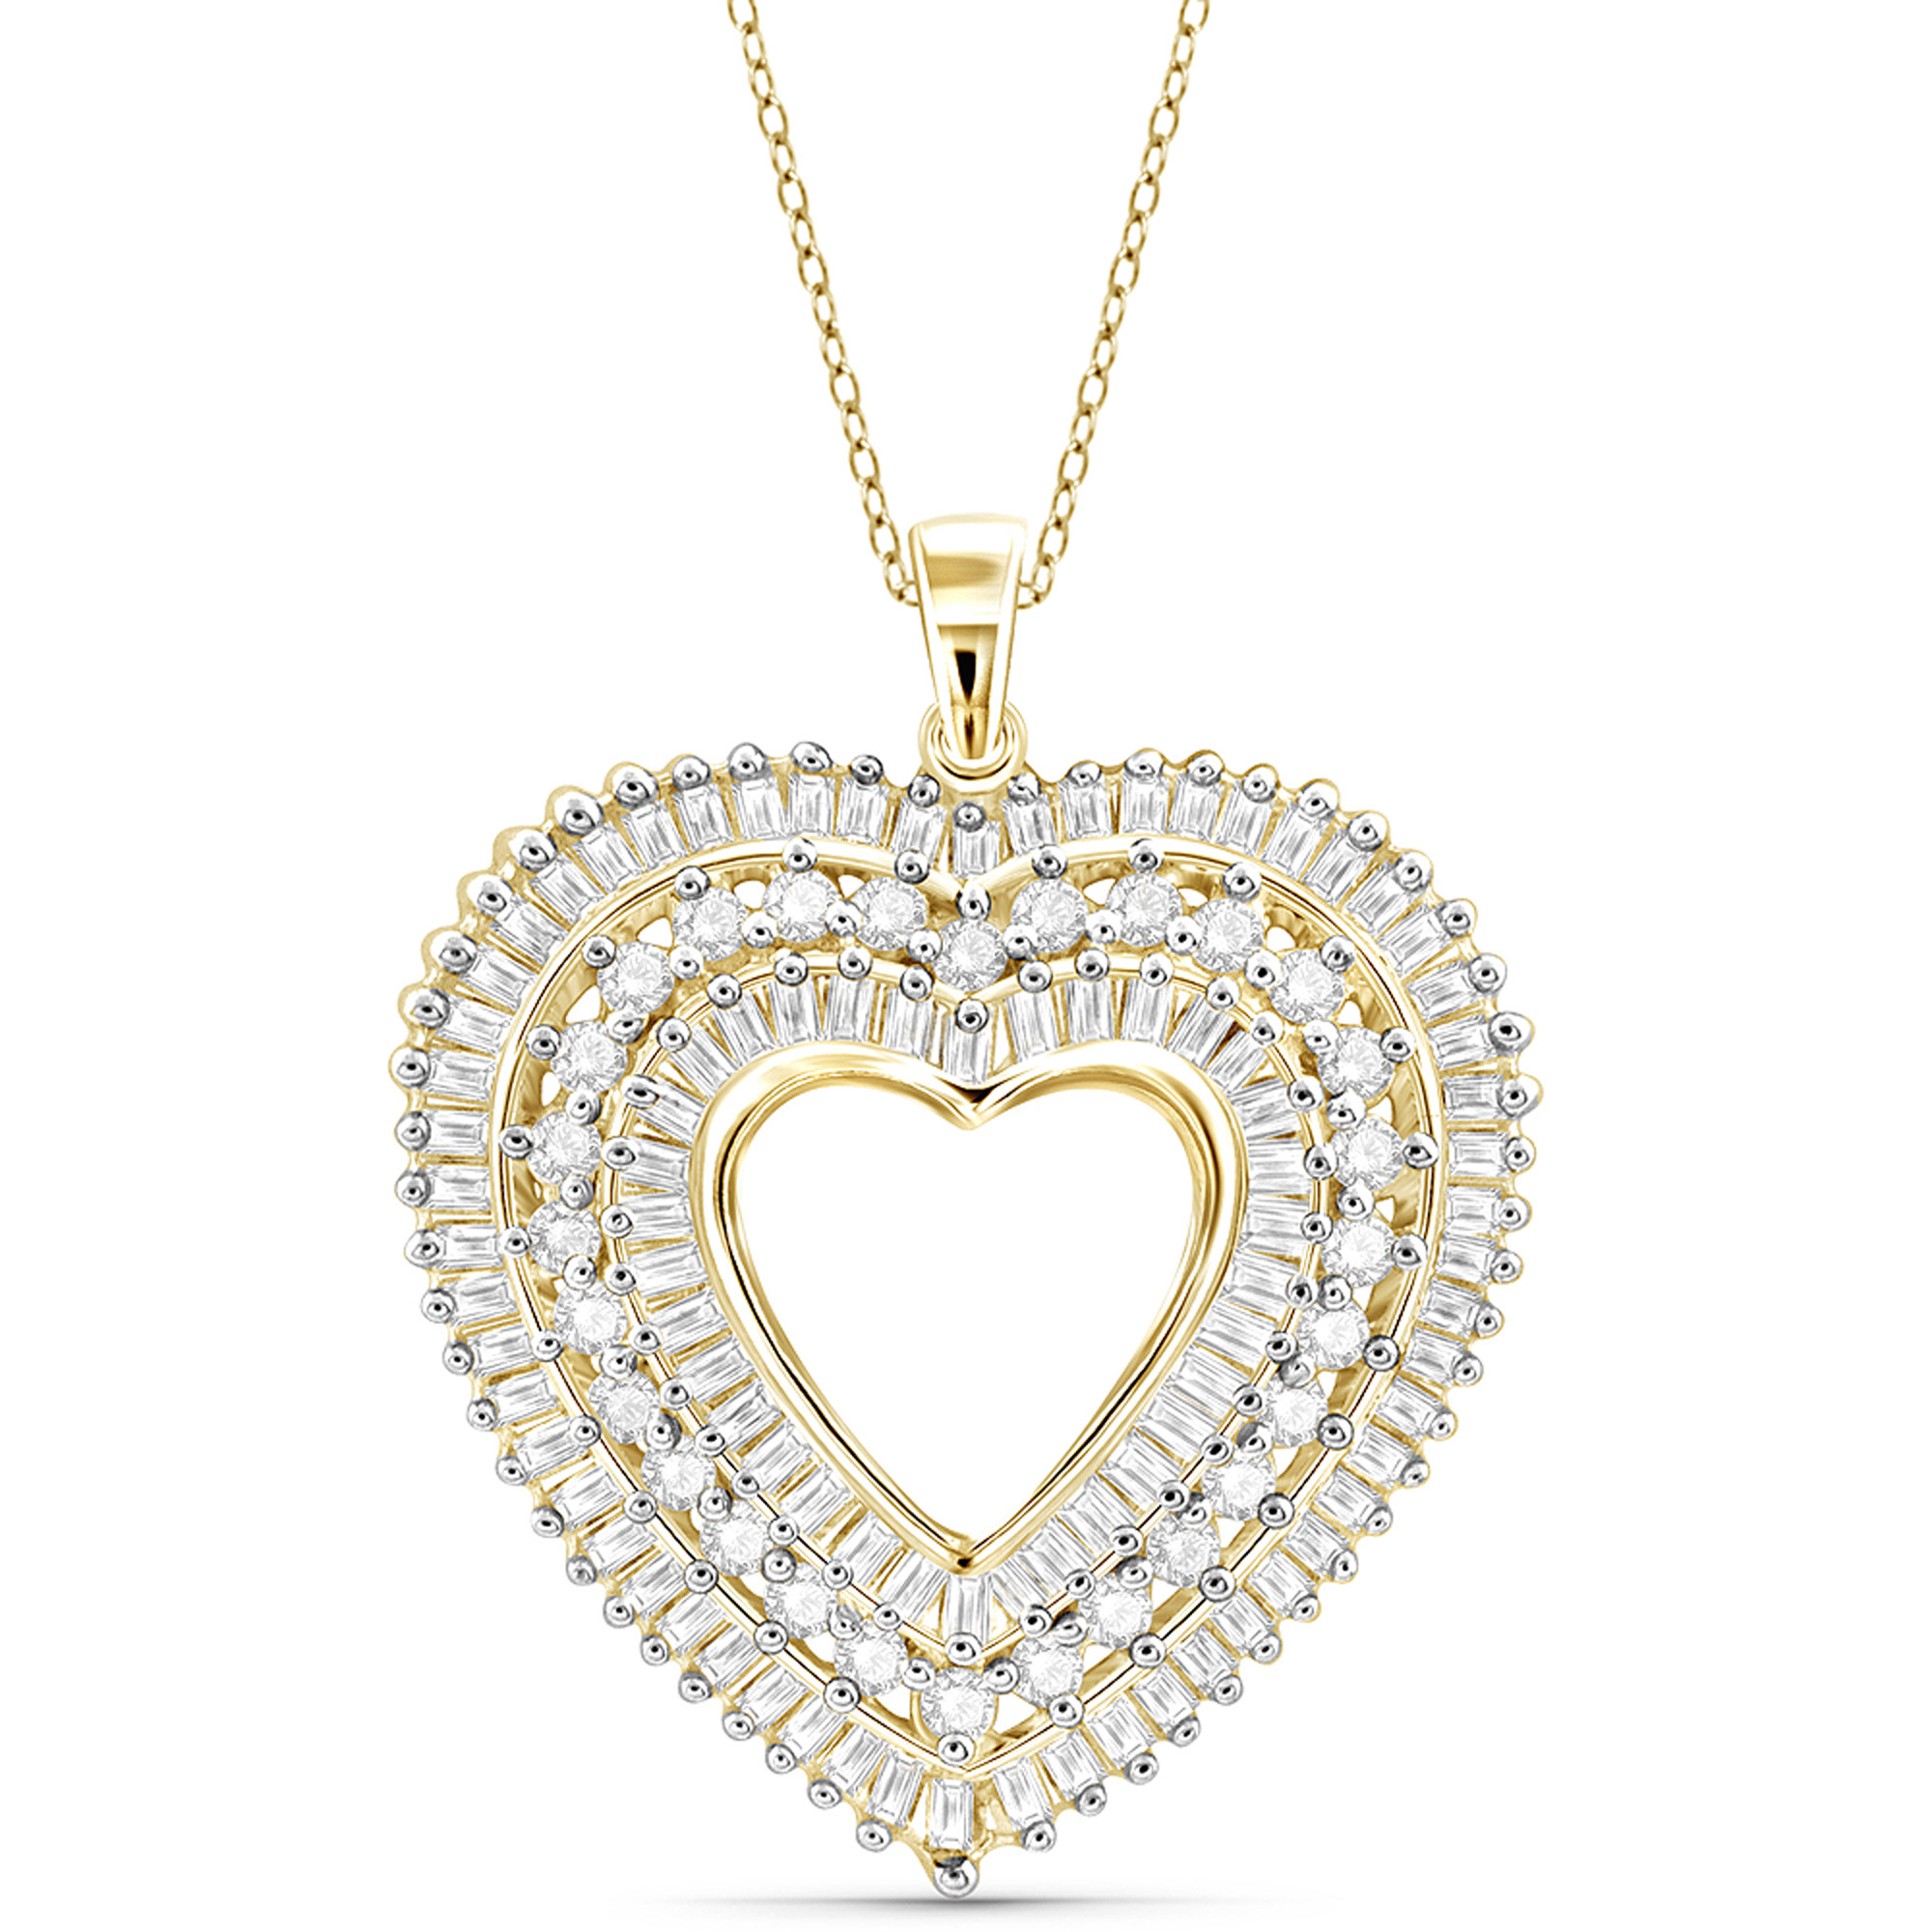 JewelersClub 1.00 Carat T.W. White Diamond Gold over Silver Heart Pendant by JewelersClub